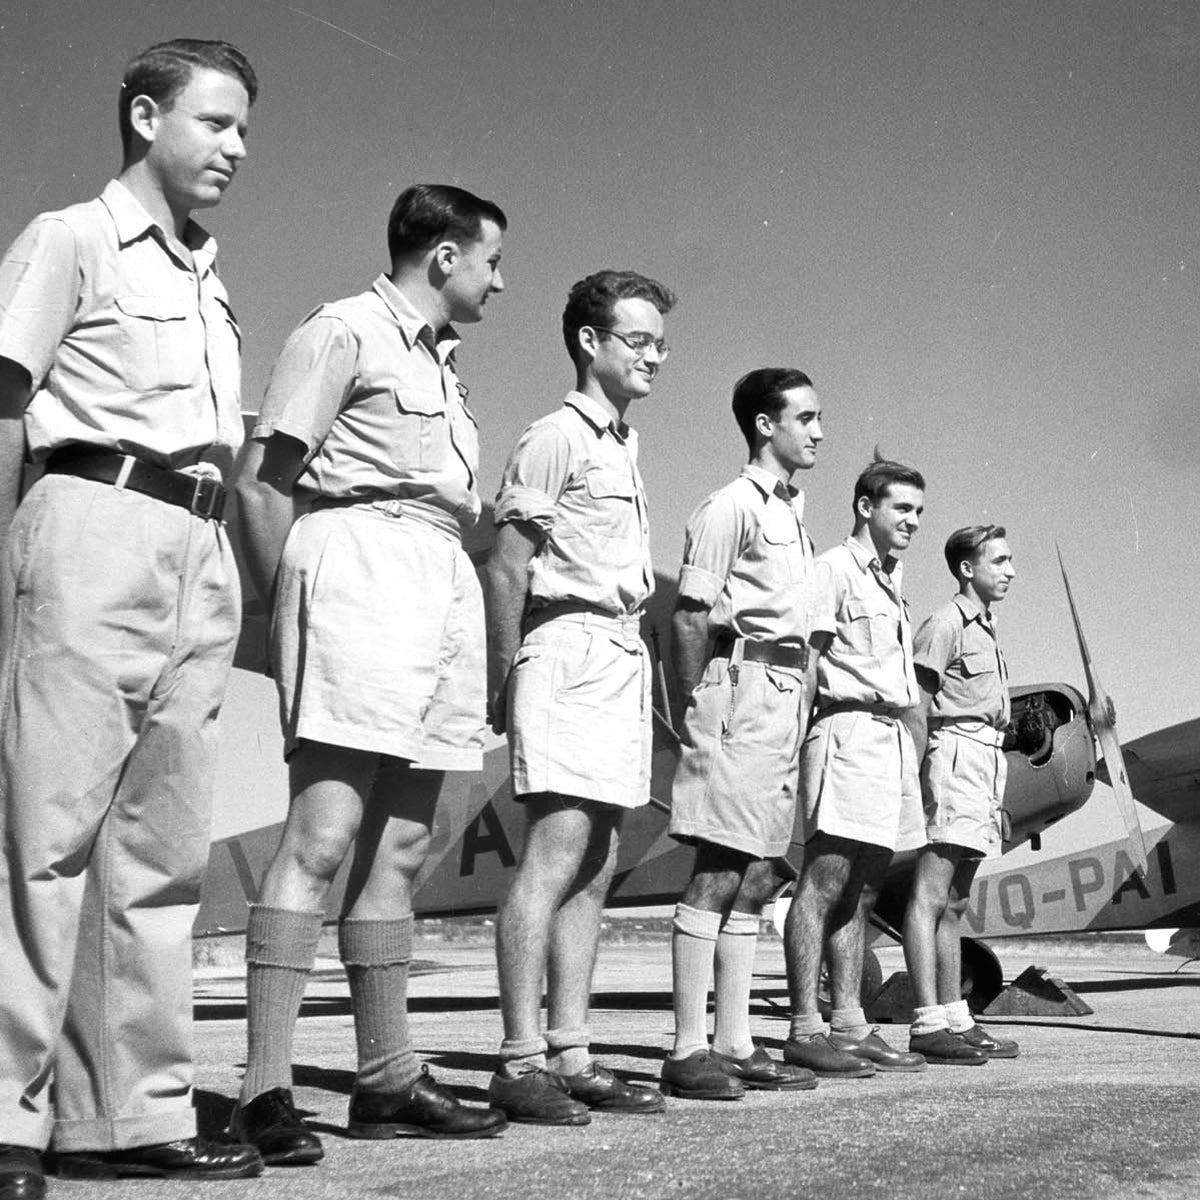 Palmach members at pilot training in Lod, 1947.